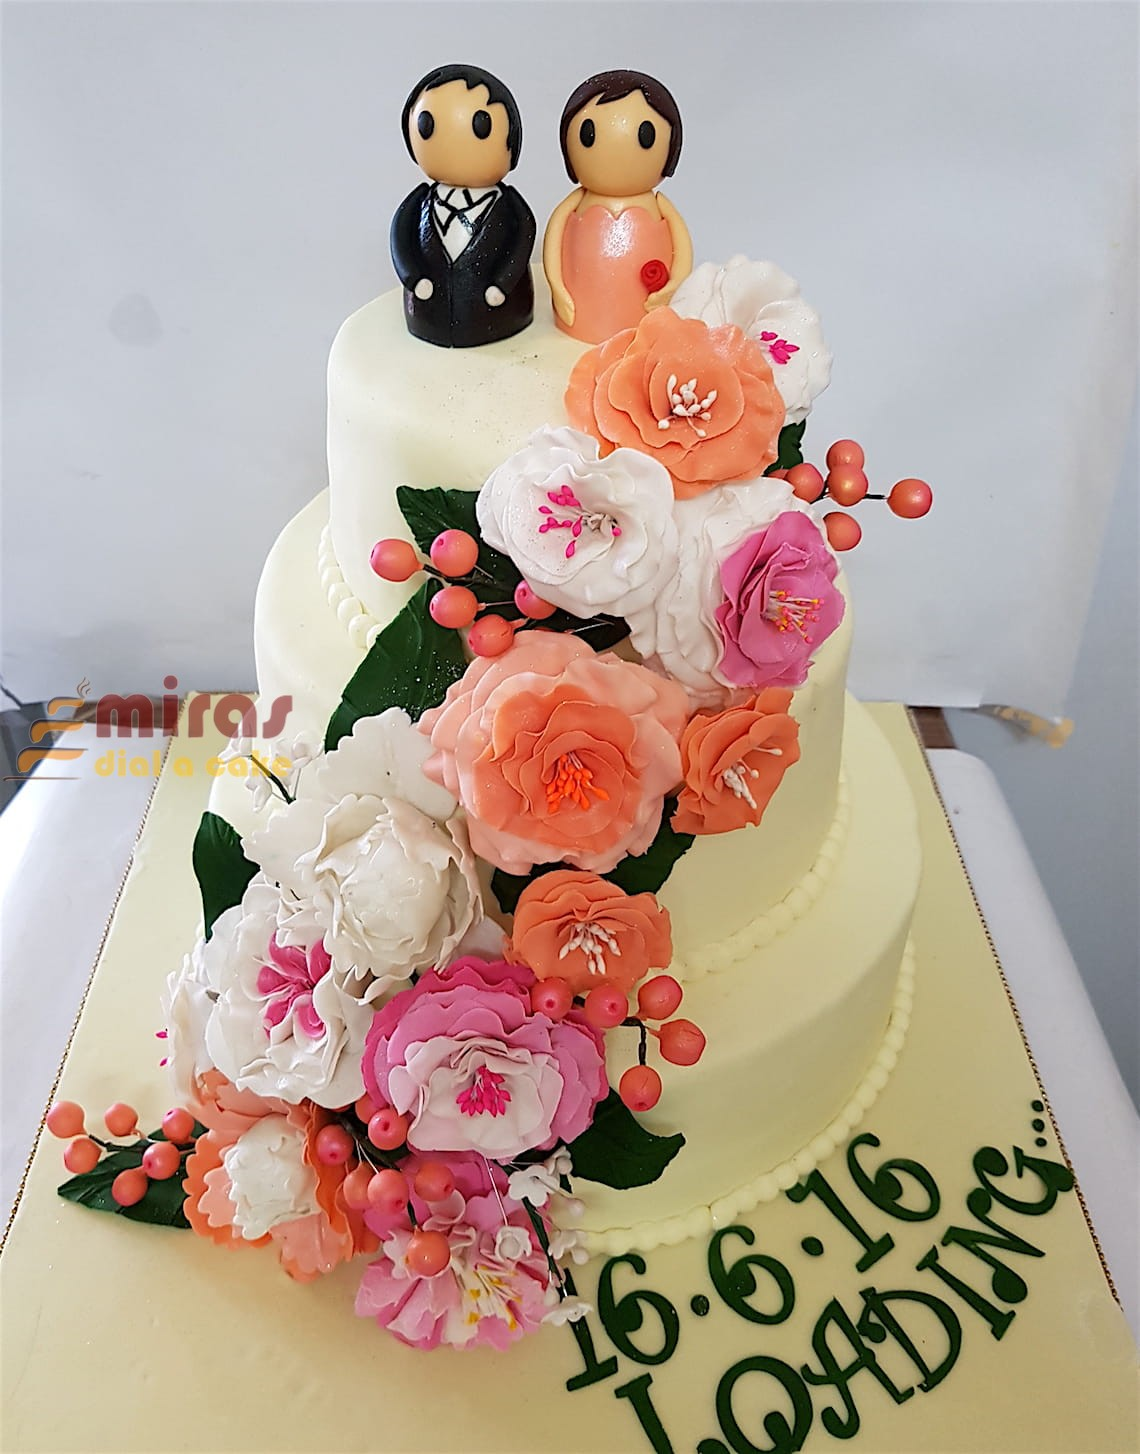 Happy Marriage Anniversary Mom Dad Cake Images Naturallycurlyecom